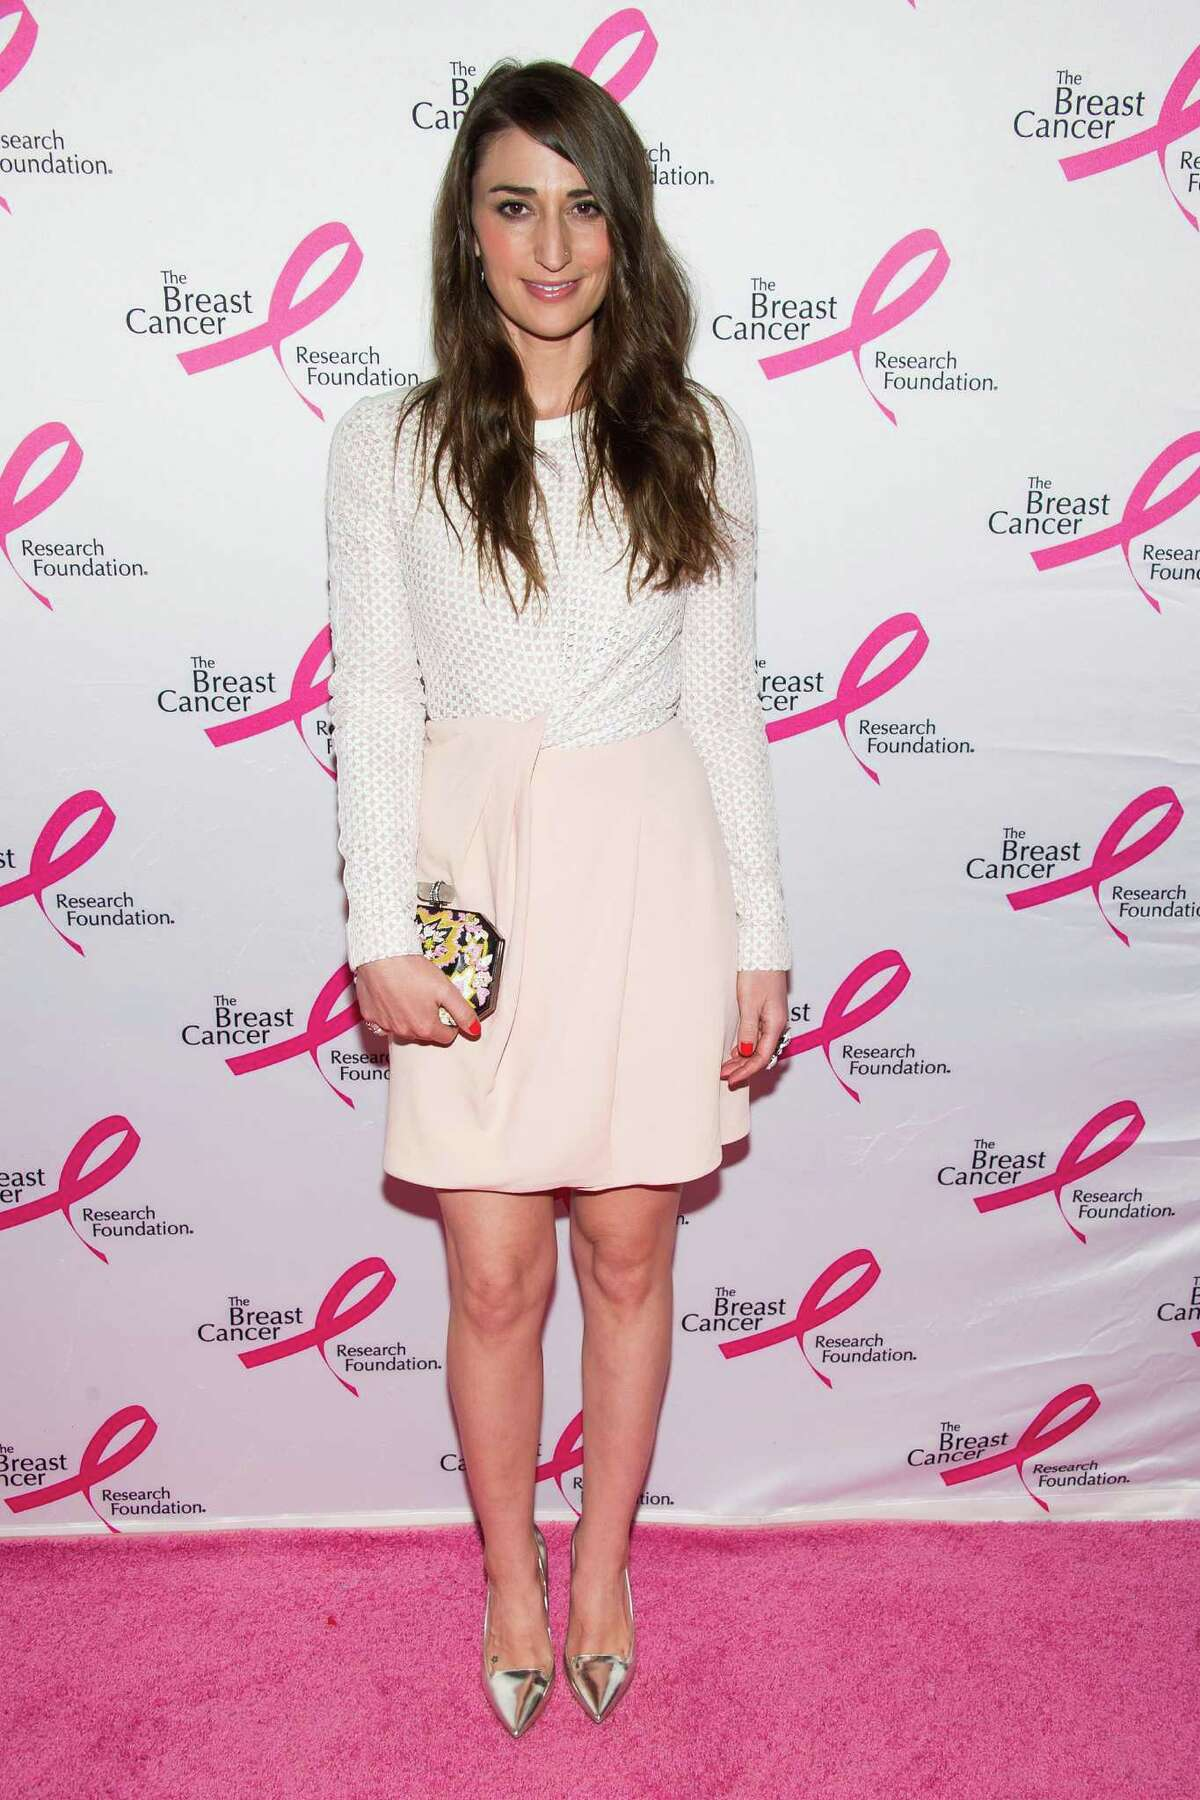 Sara Bareilles attends the Breast Cancer Research Foundation Hot Pink Party on Monday, April 28, 2014 in New York. (Photo by Charles Sykes/Invision/AP) ORG XMIT: NYCS106